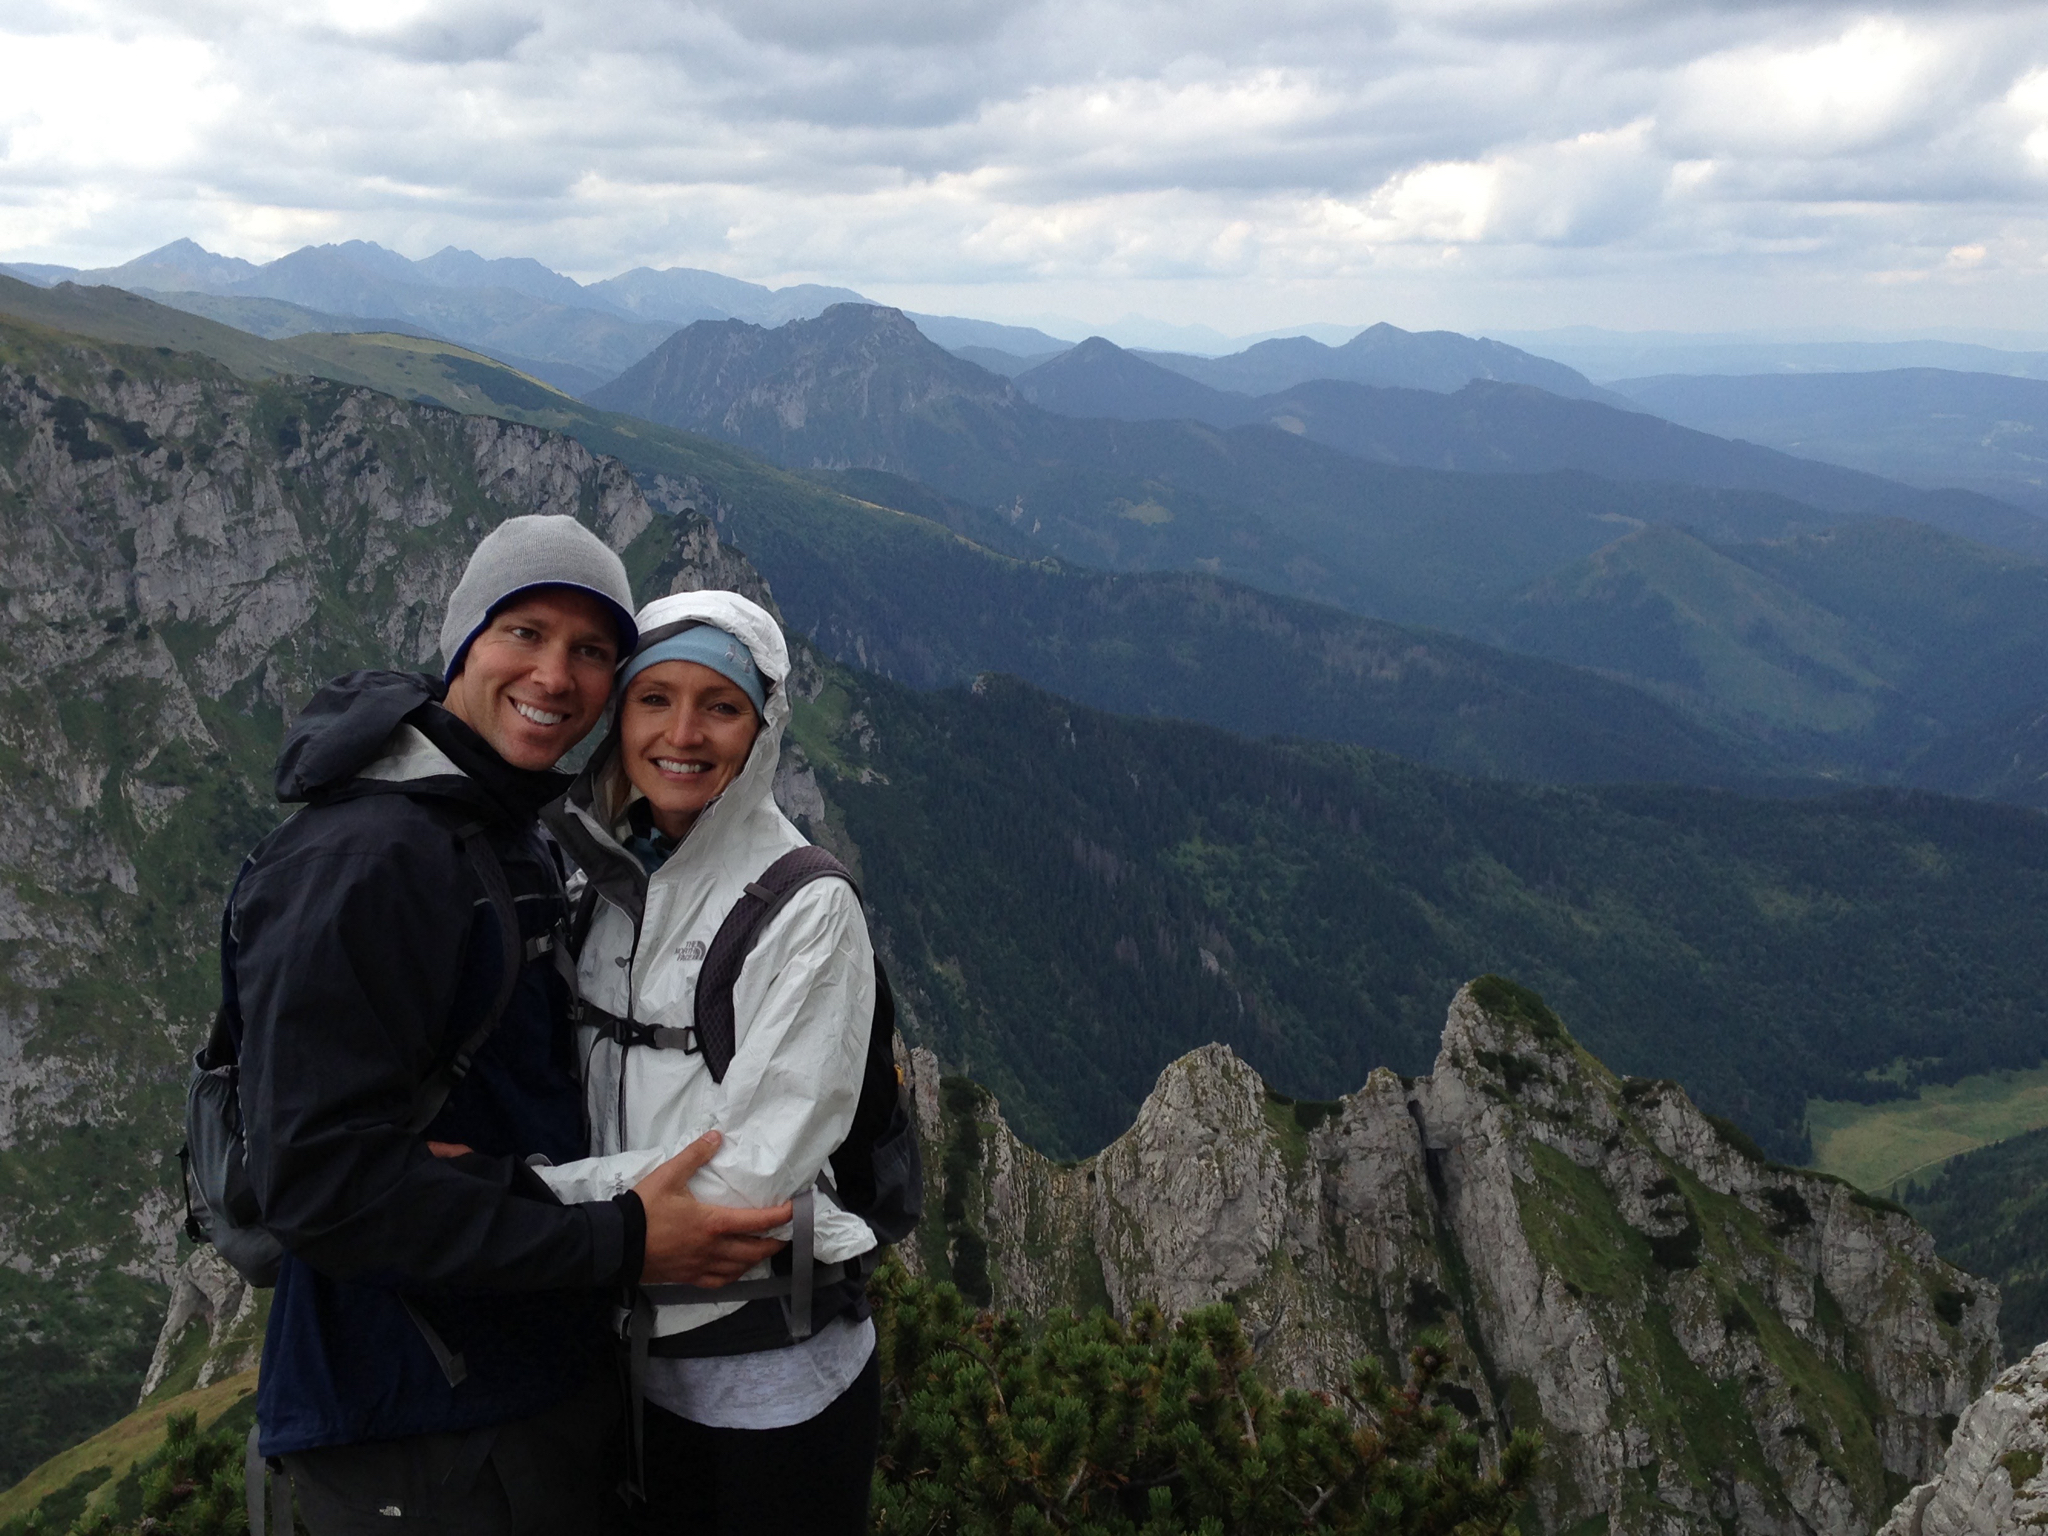 Hiking and boosts in stress hormones for better health